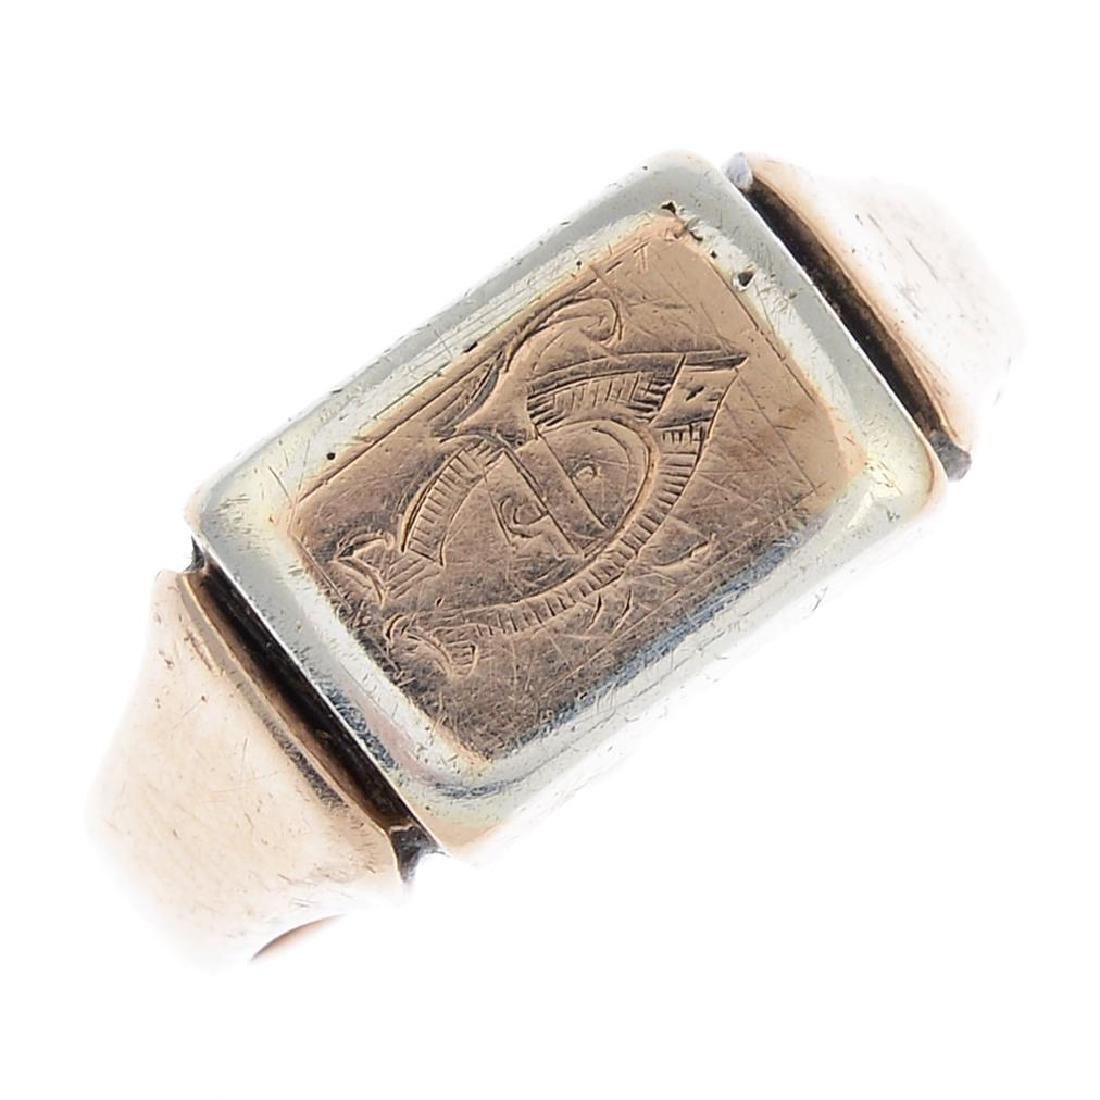 A gentleman's early 20th century 9ct gold signet ring.